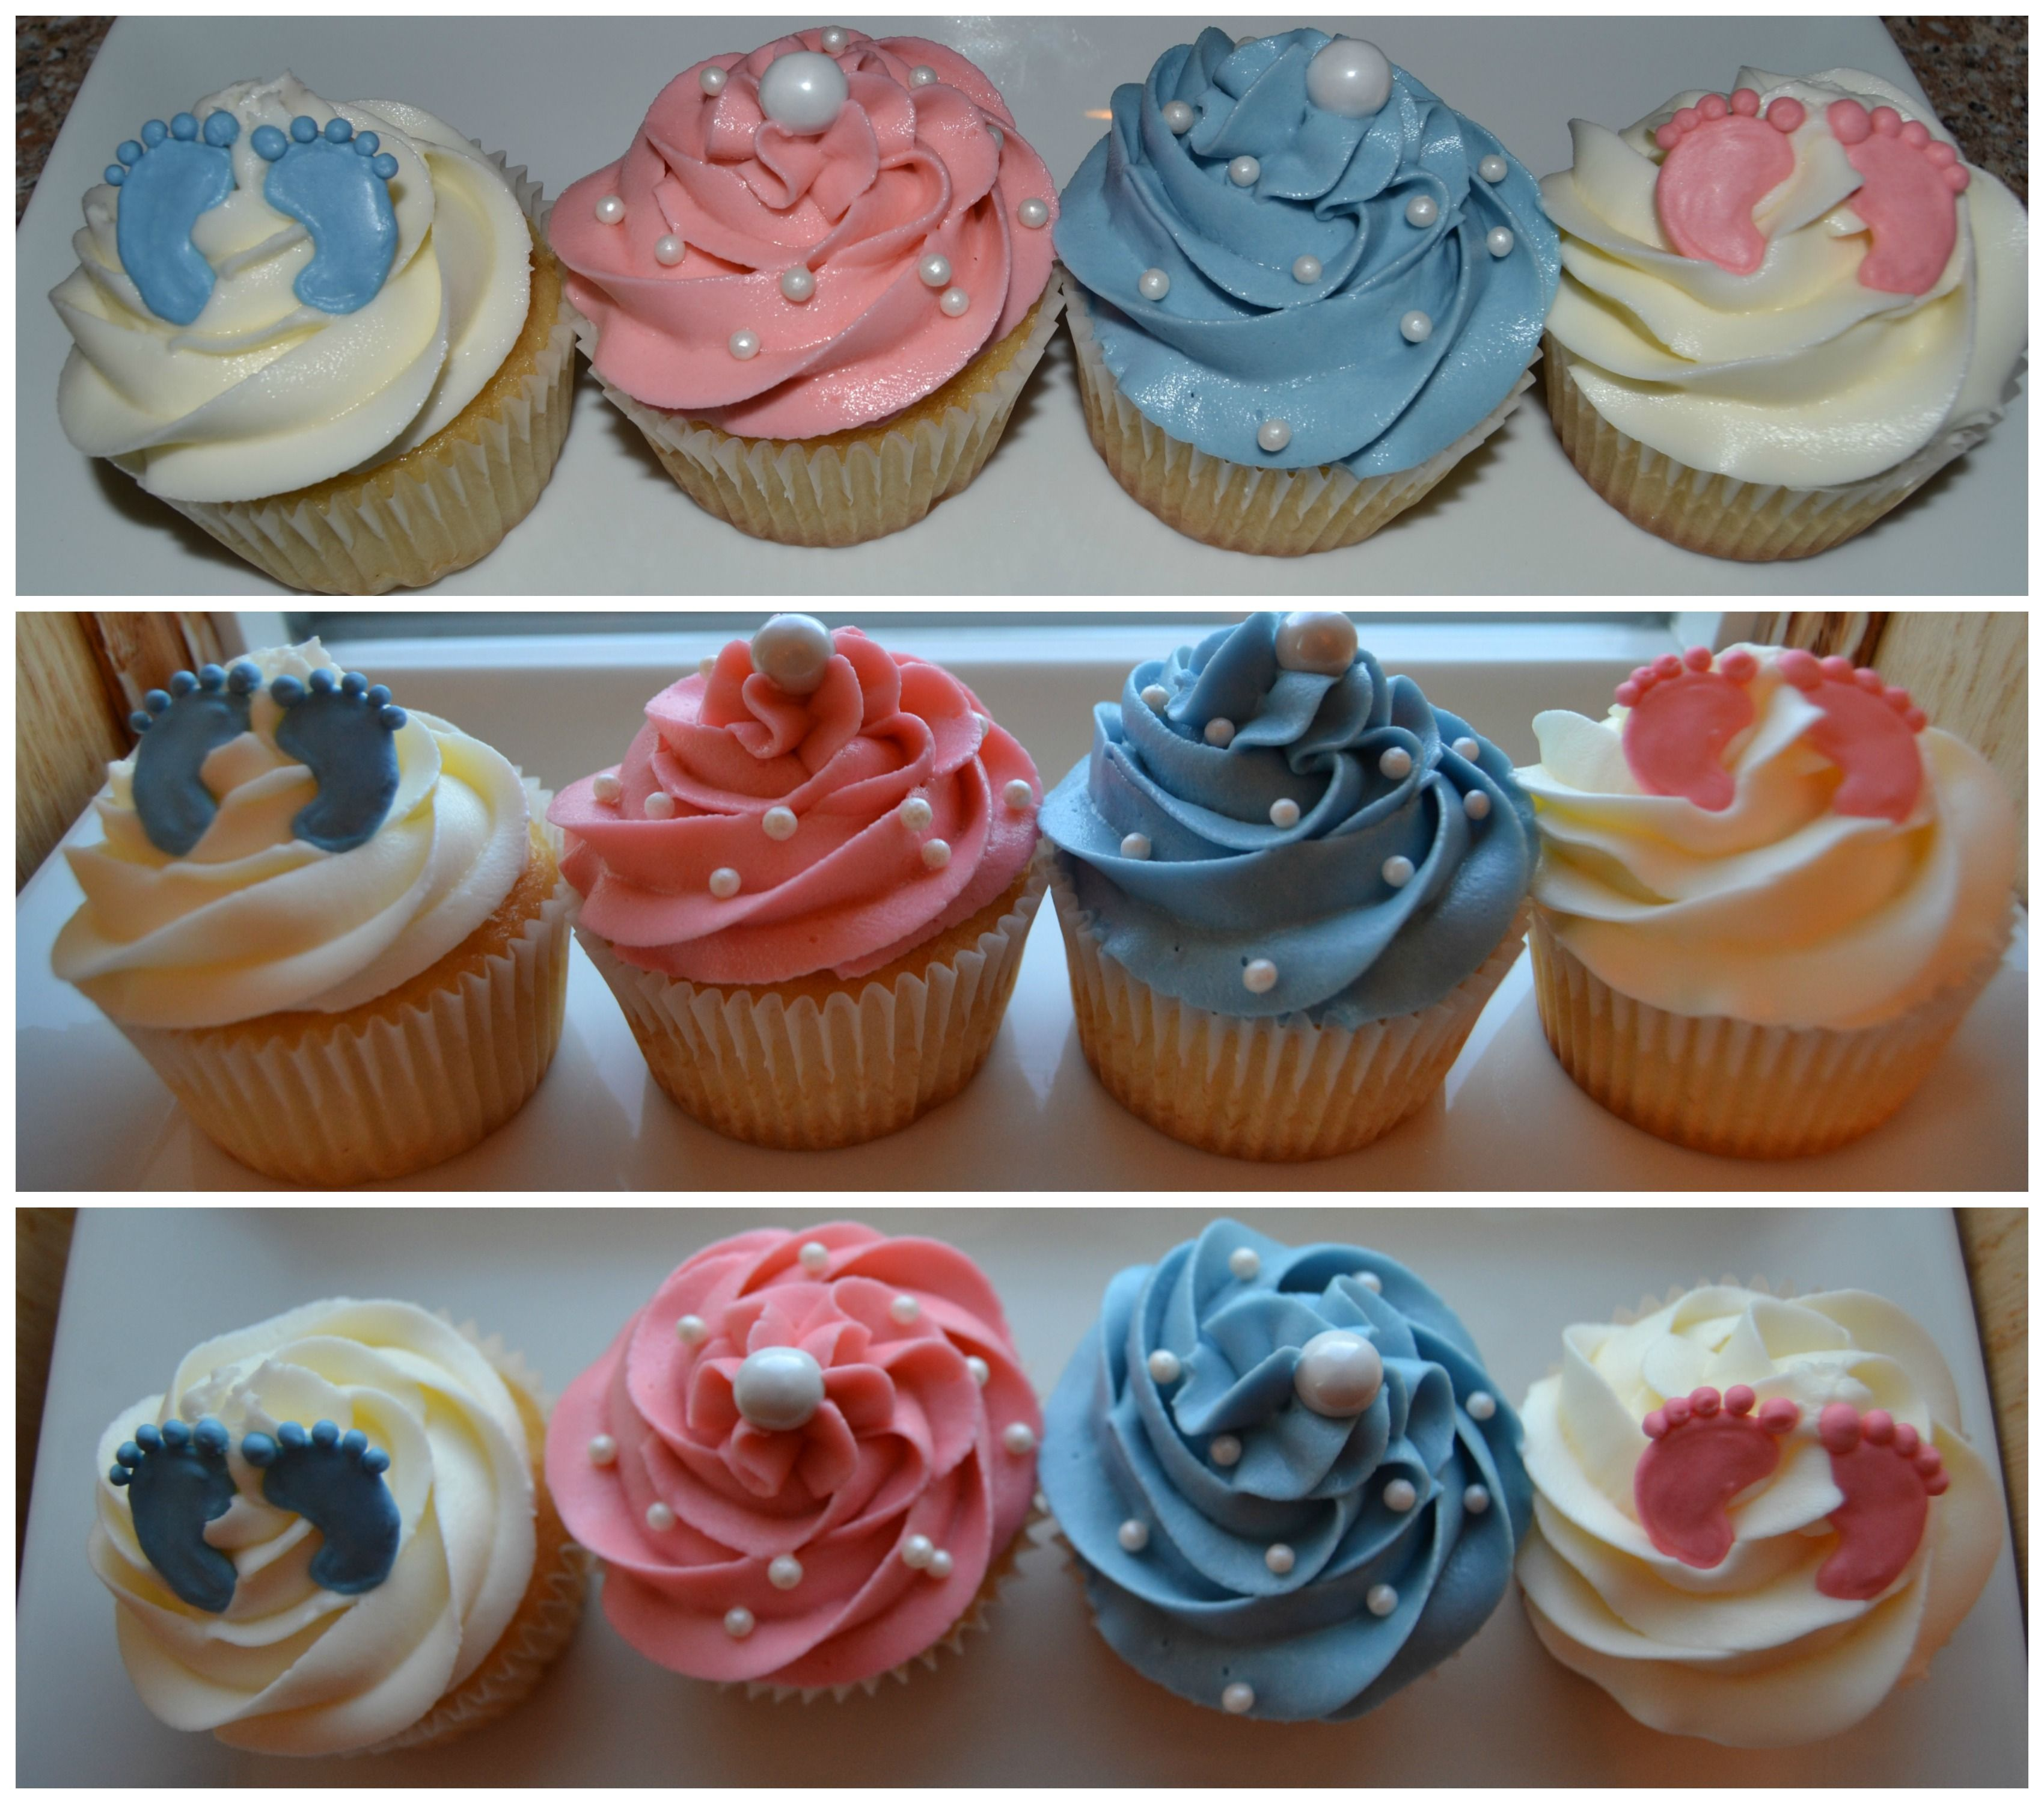 Baby Shower Cupcakes Buttercream Frosting Piped With 1m Tip